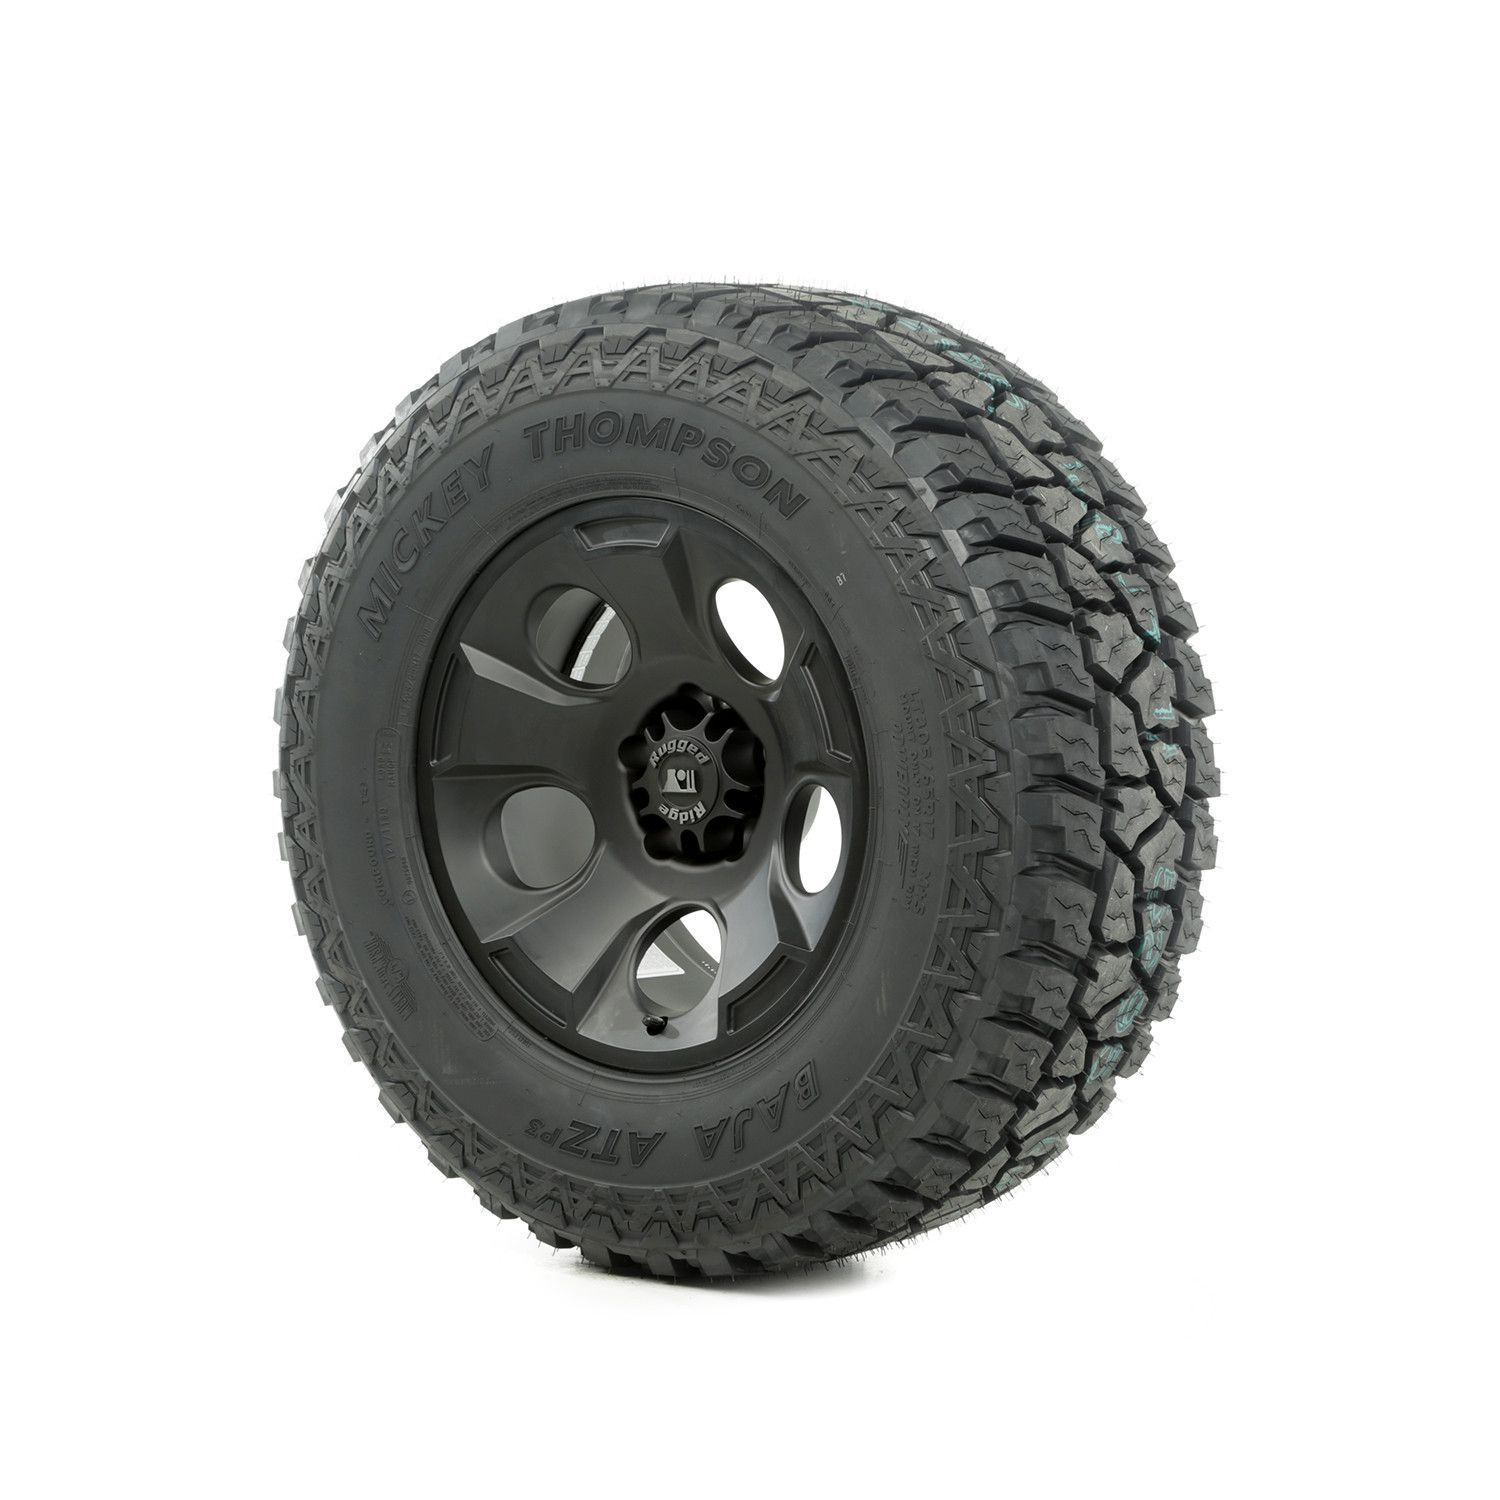 Wheel And Tire Drakon 17x9 Black Satin 305 65r17 Atz P3 At Get4x4parts Com For Only 799 66